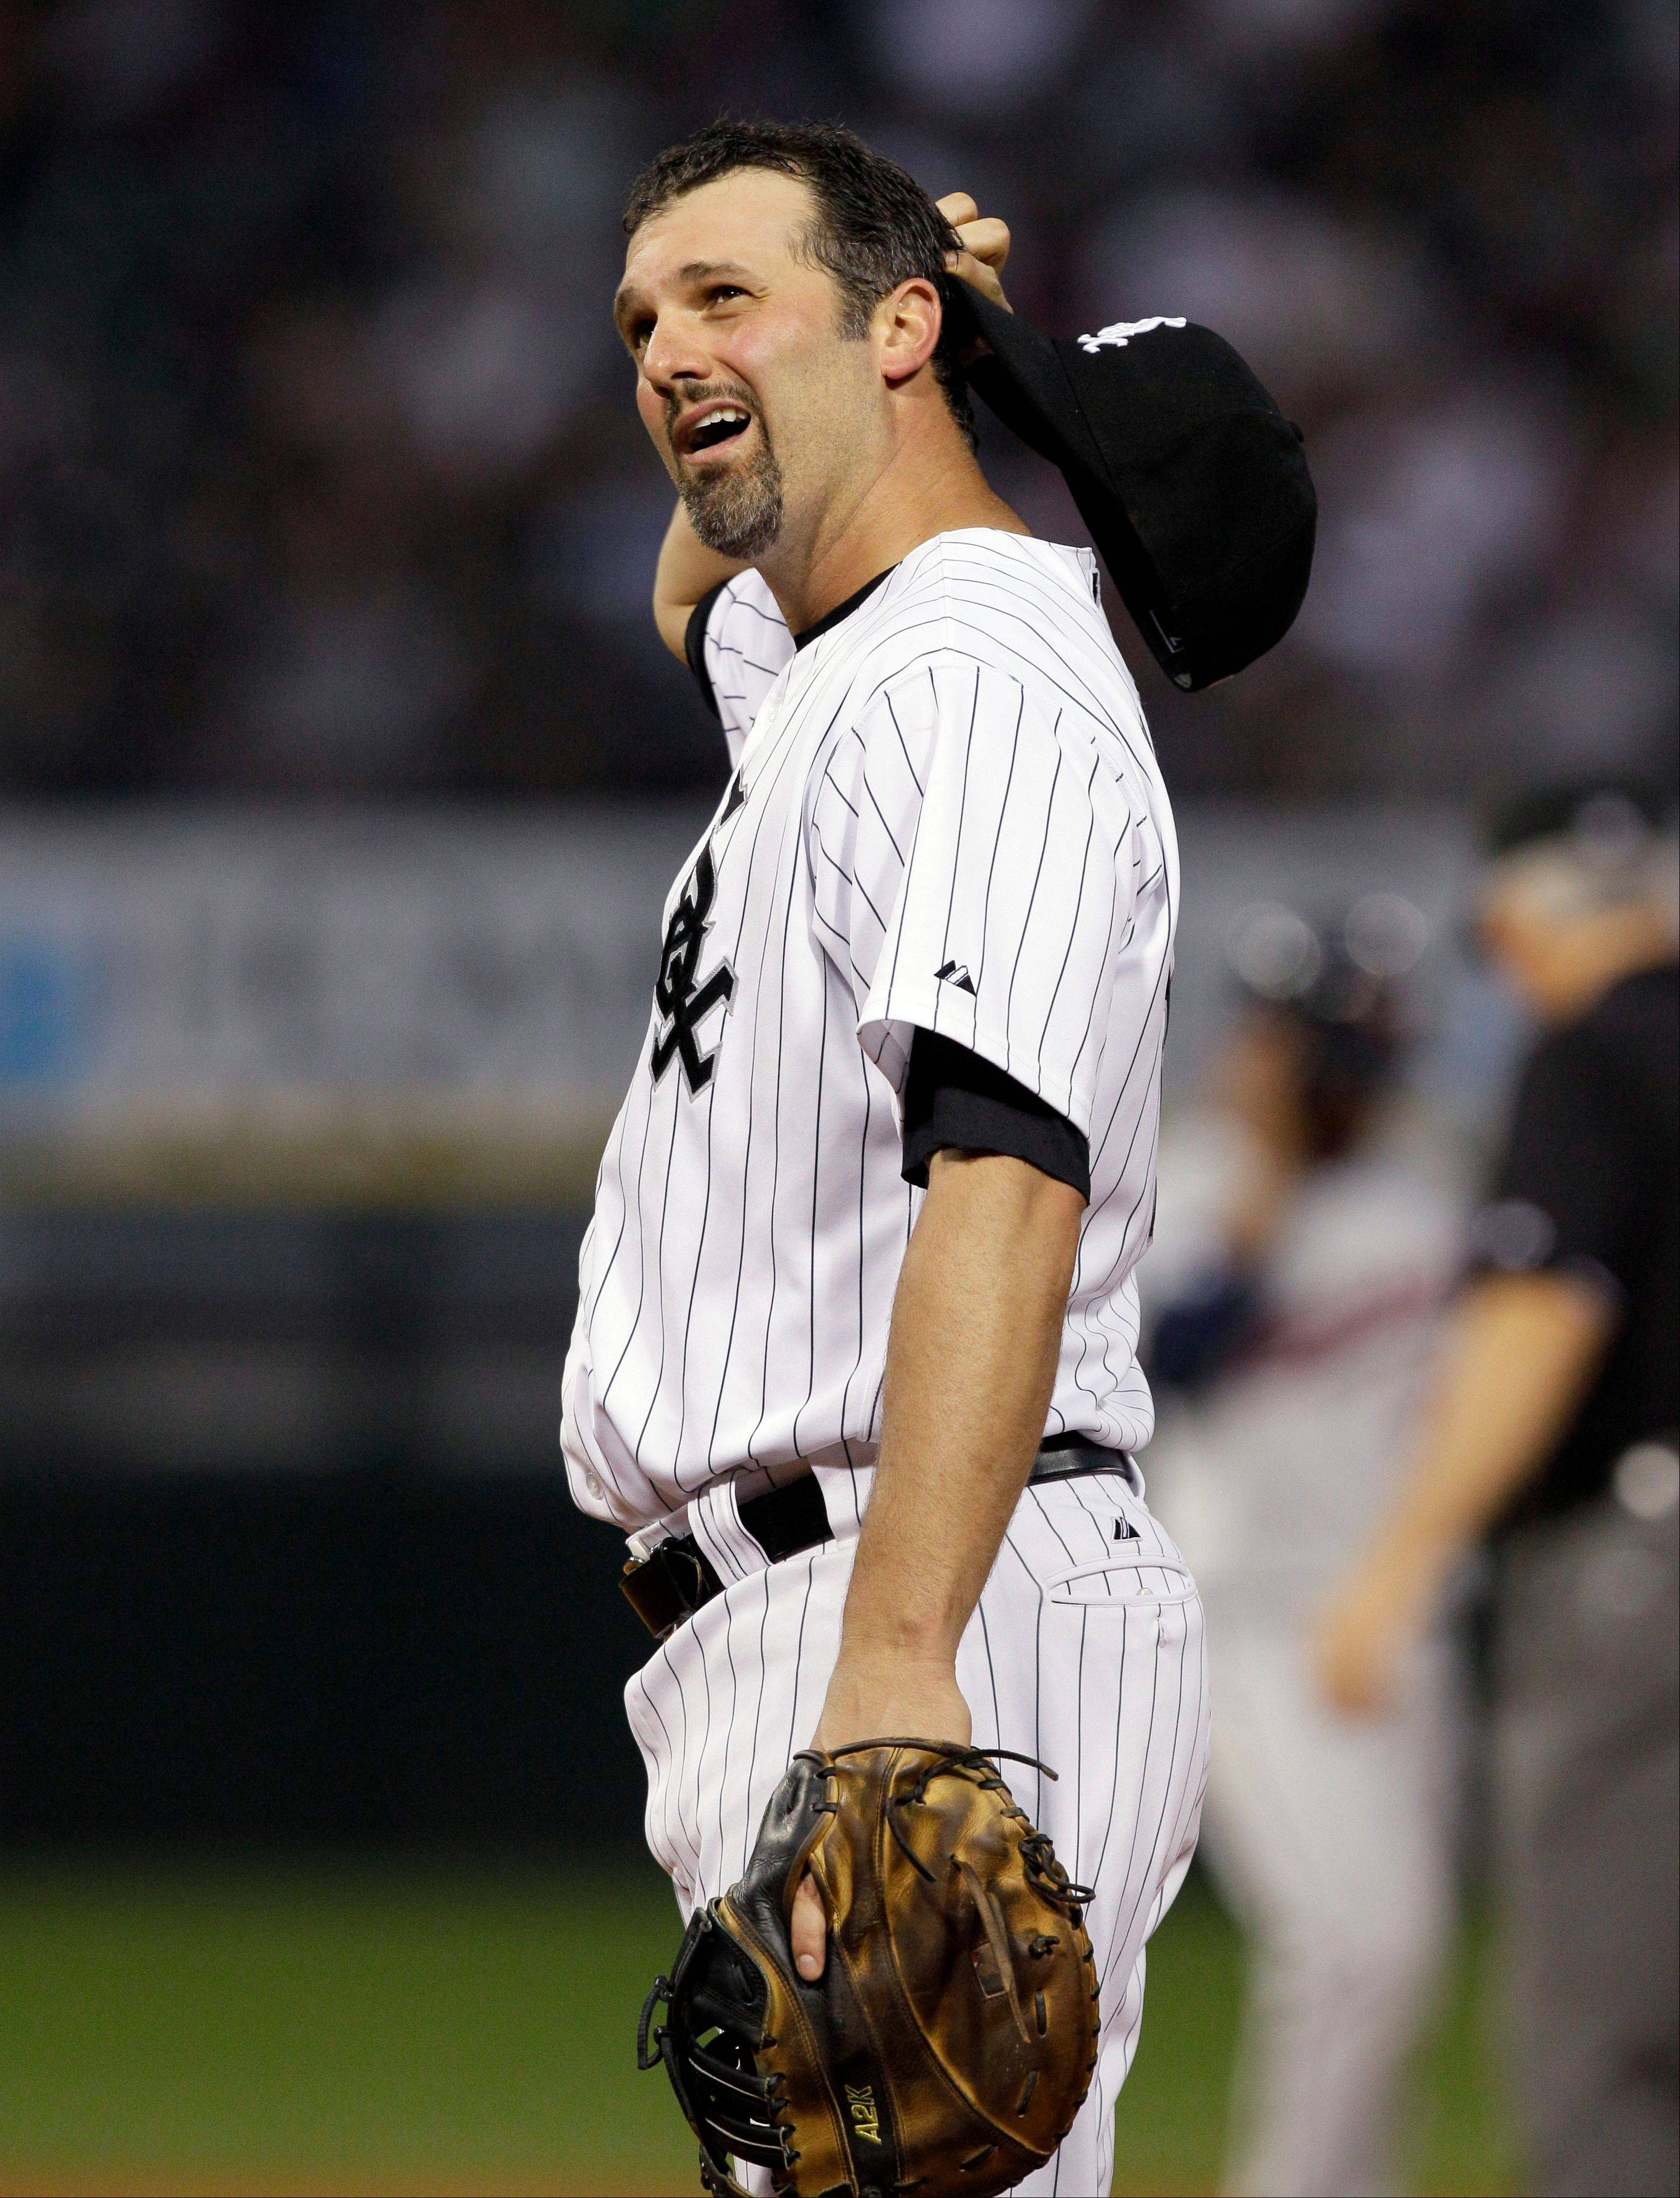 Paul Konerko reacts as he looks up during the fourth inning of a baseball game against the Minnesota Twins Friday, July 8, 2011, in Chicago.